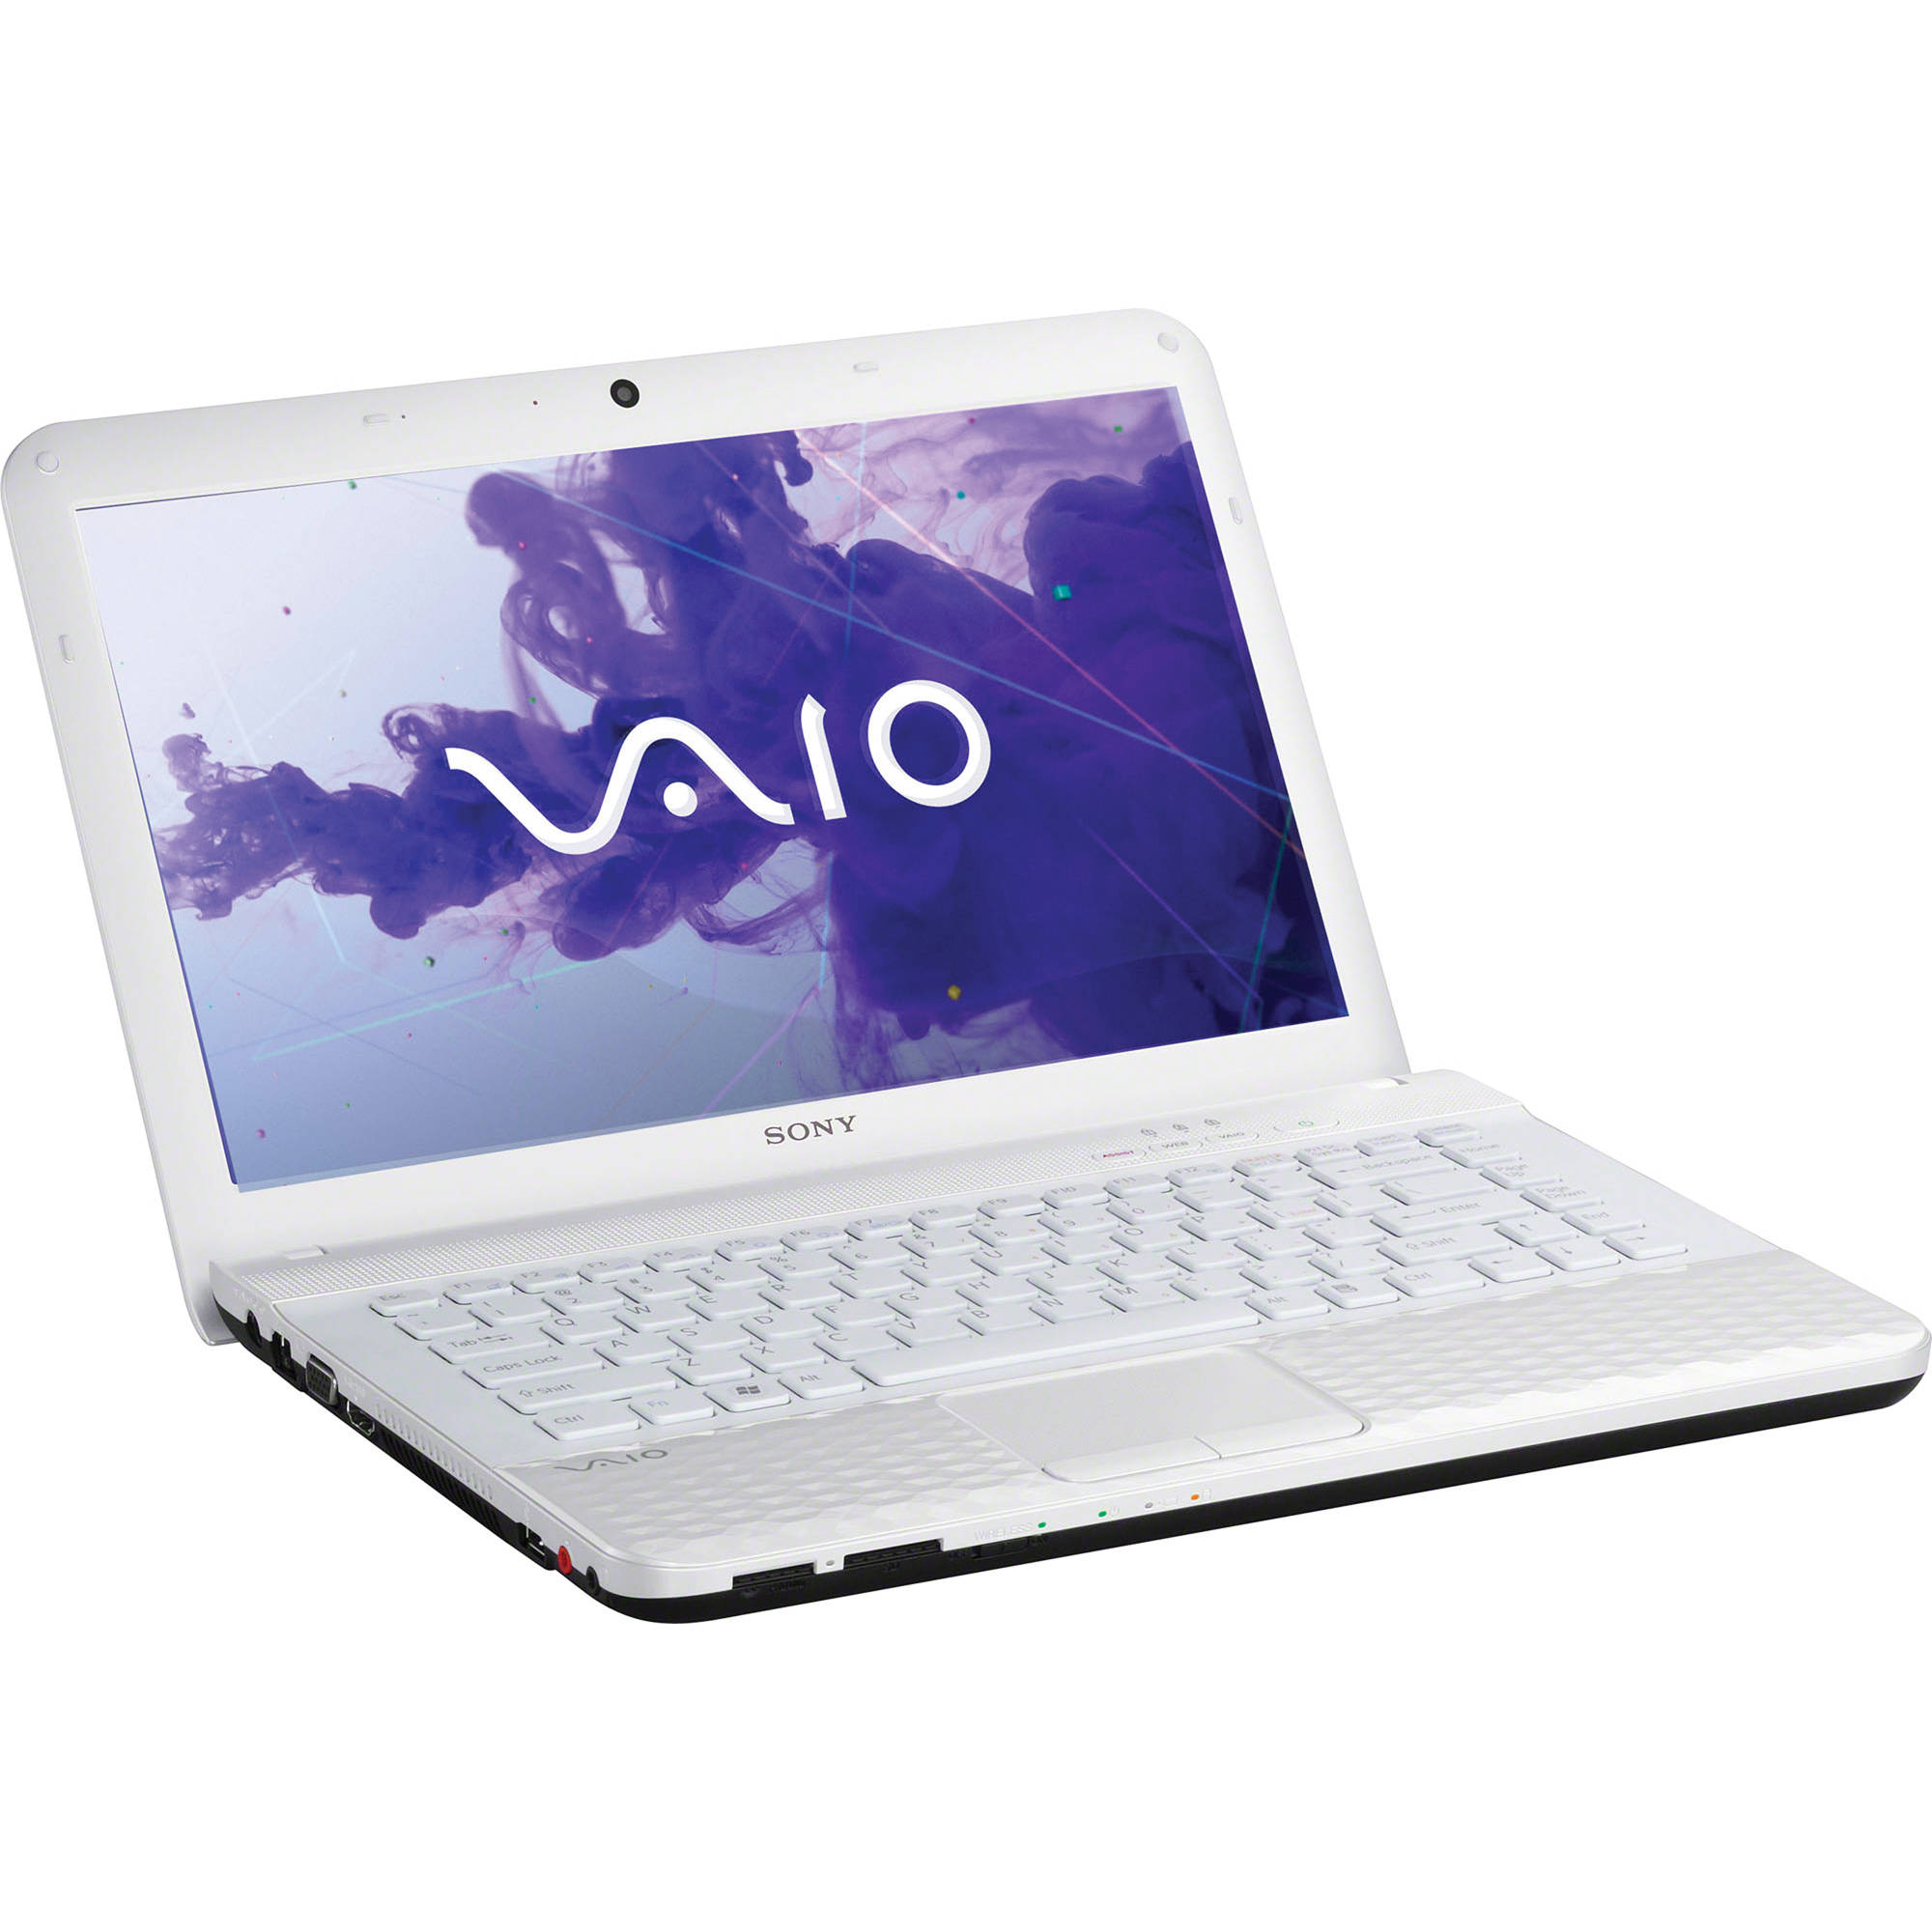 Sony Vaio VPCEG3PFX Hitachi ODD Download Driver